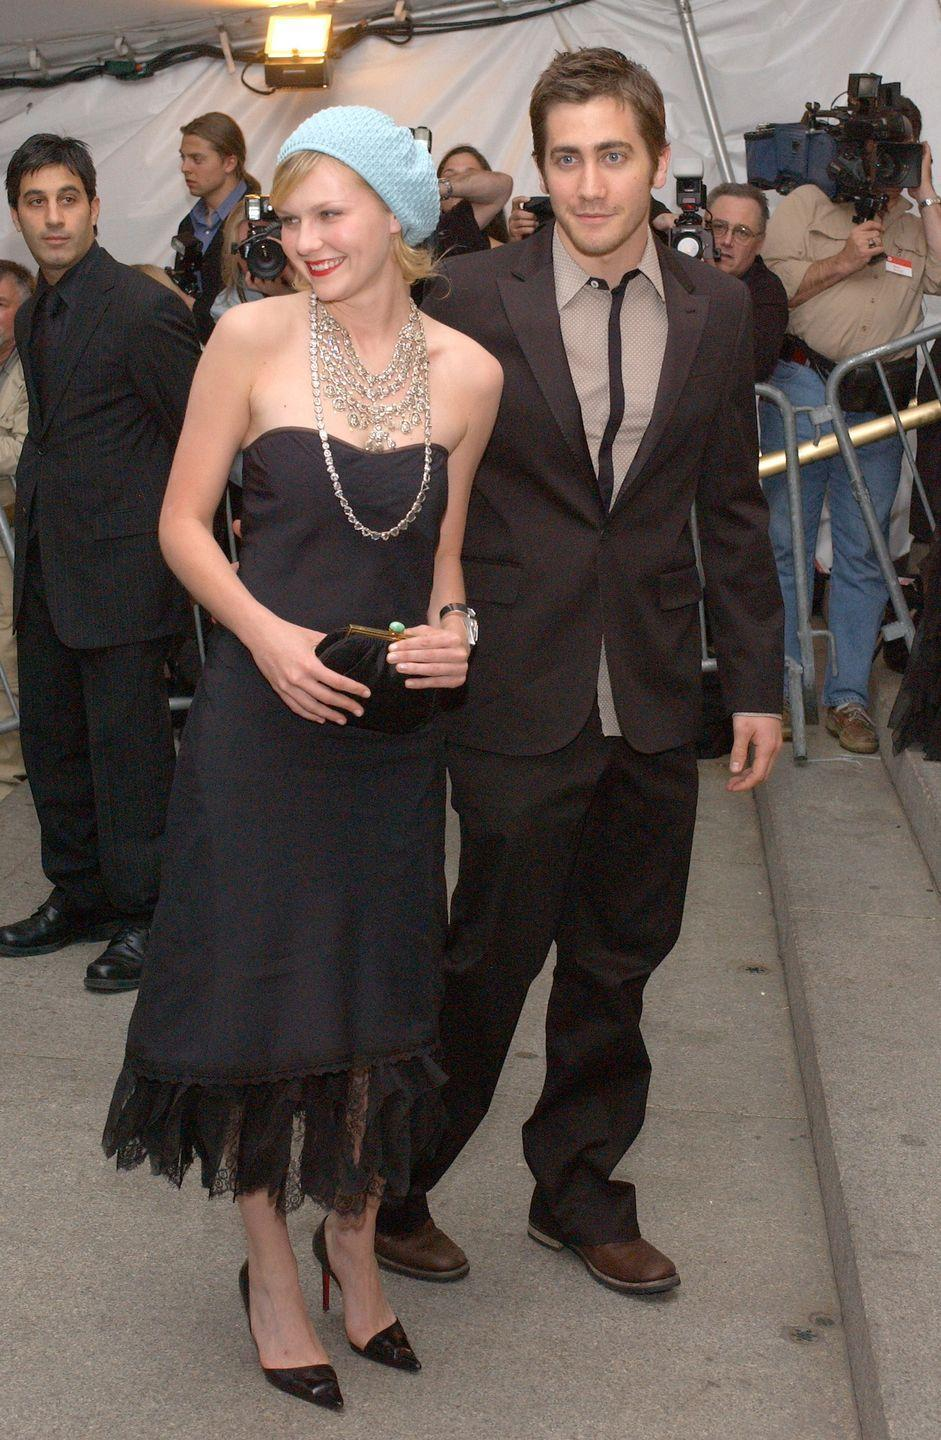 <p>Though she was slightly on the casual side, Kirsten wasn't afraid to break the fashion rules at the Met Gala in 2003 with her light blue beret. Just in case a cold chill comes through guys!!</p>